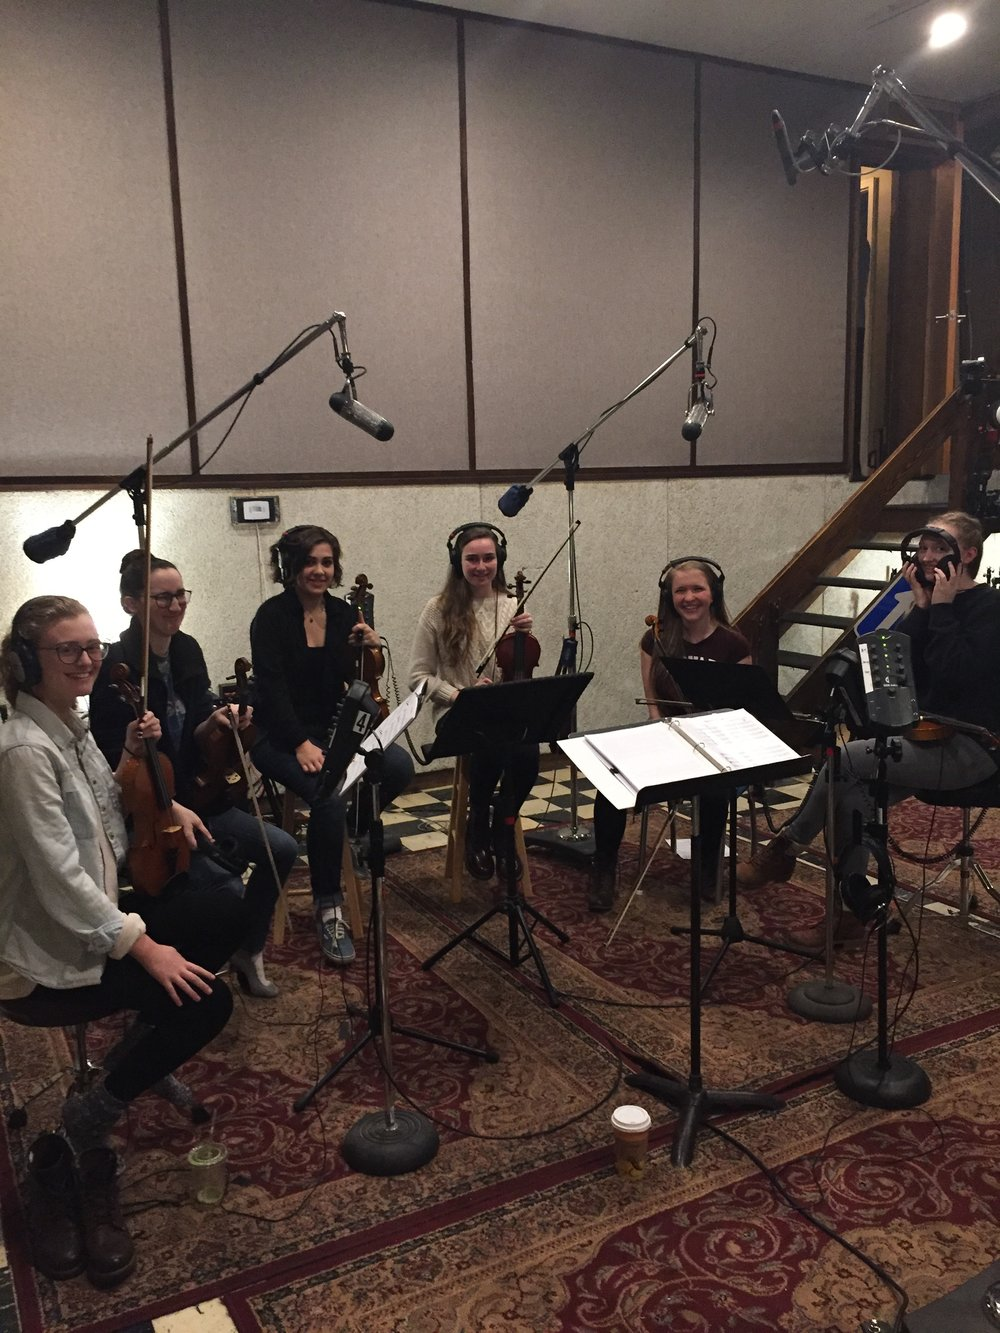 MYRO went down to Jamaica Plains in Boston, MA to record a 3-song EP at Dimension  Sound Studio with The Ballroom Thieves and engineer Dan Cardinal.